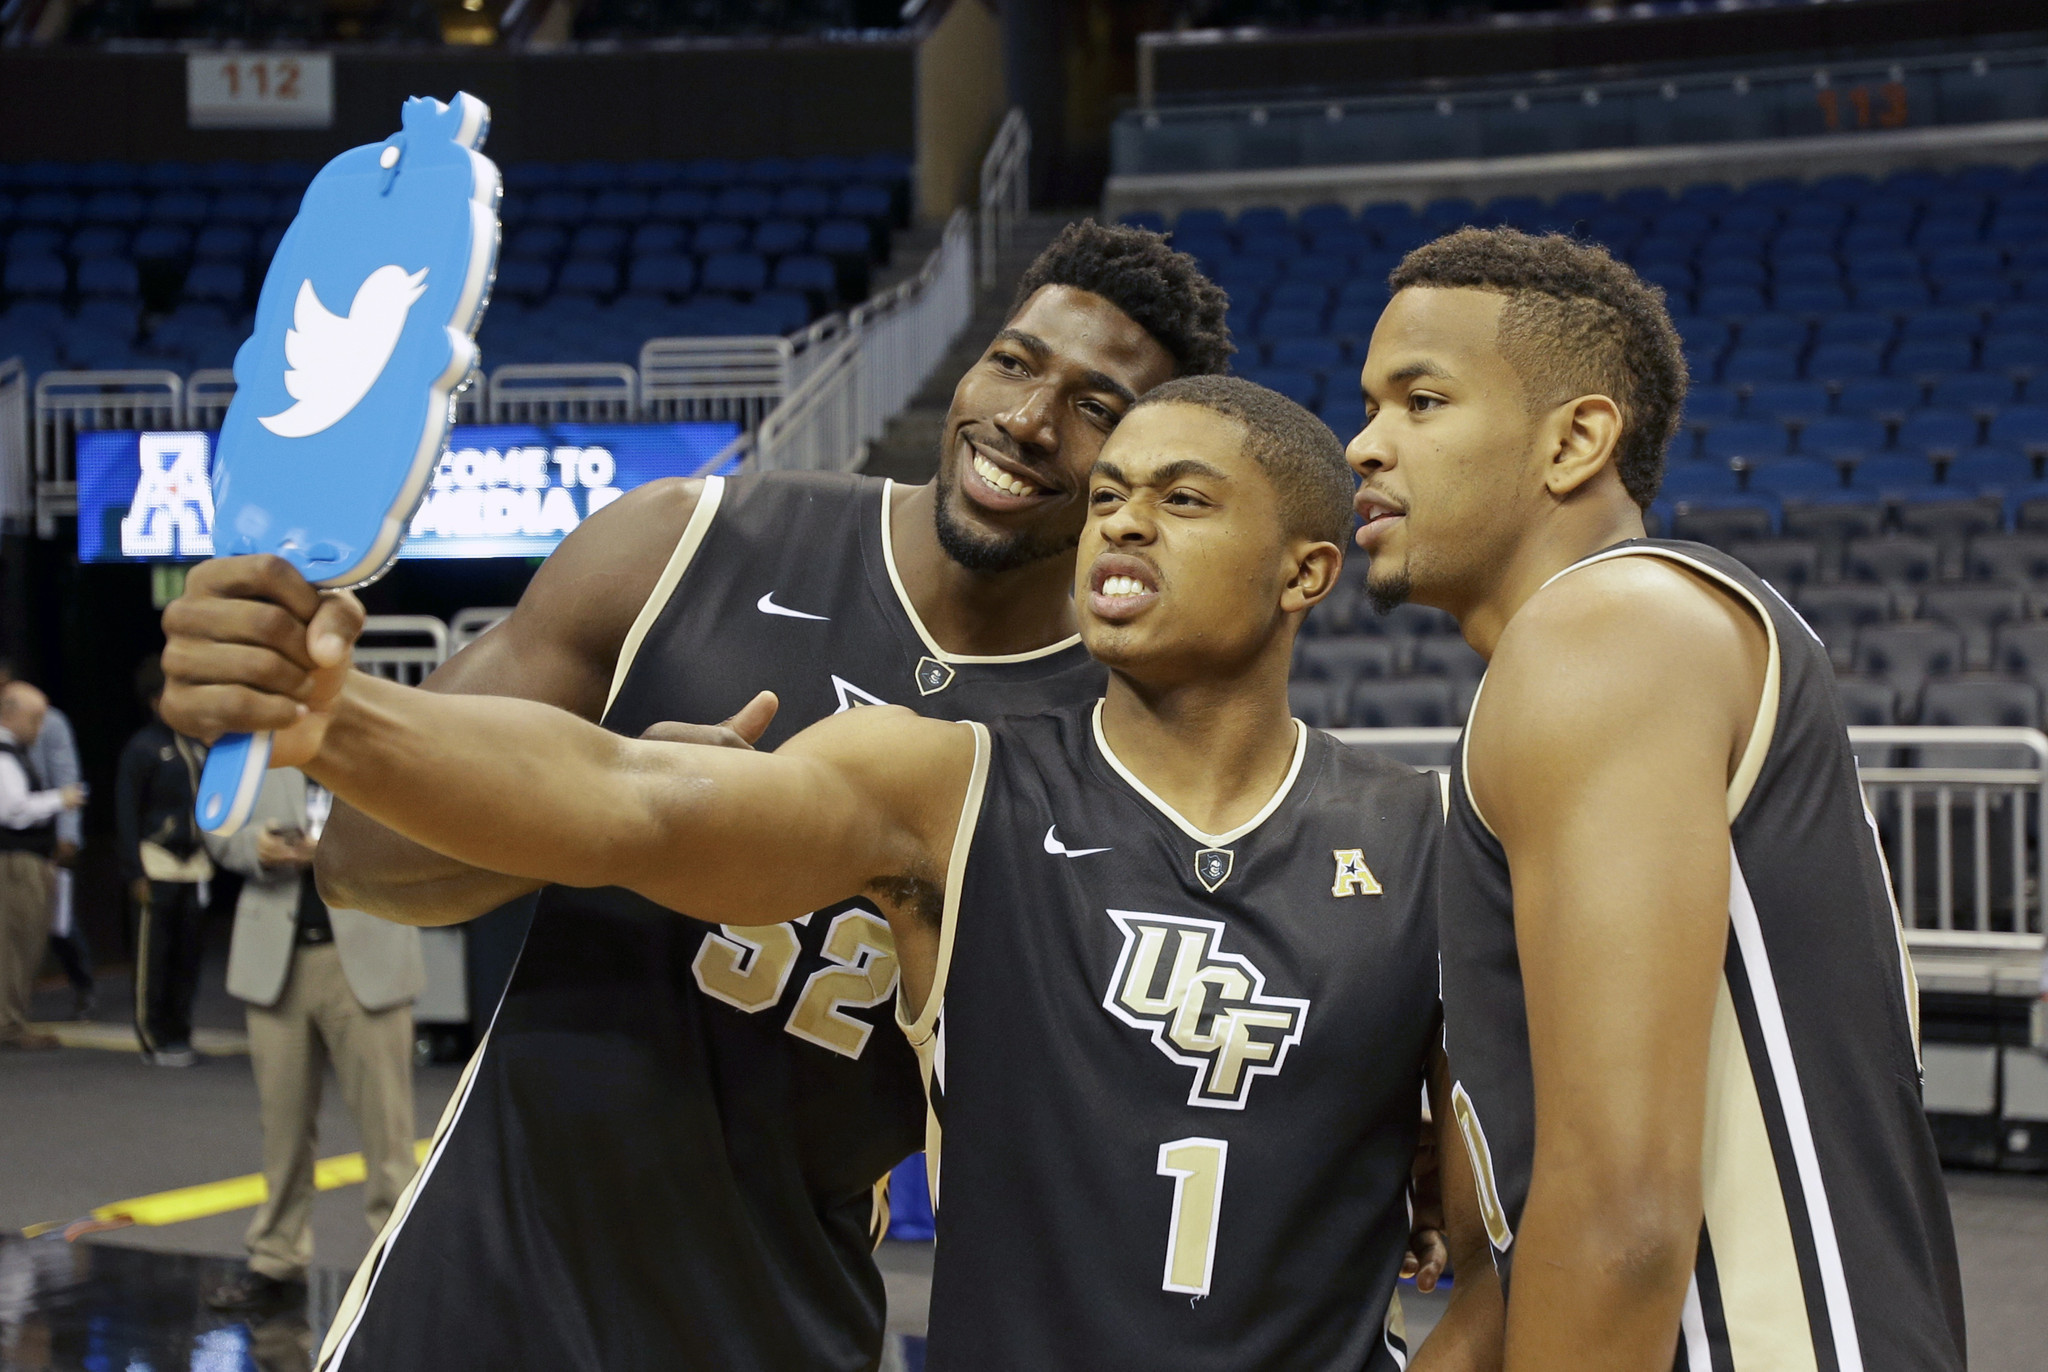 UCF men's basketball team looks to prove doubters wrong ...